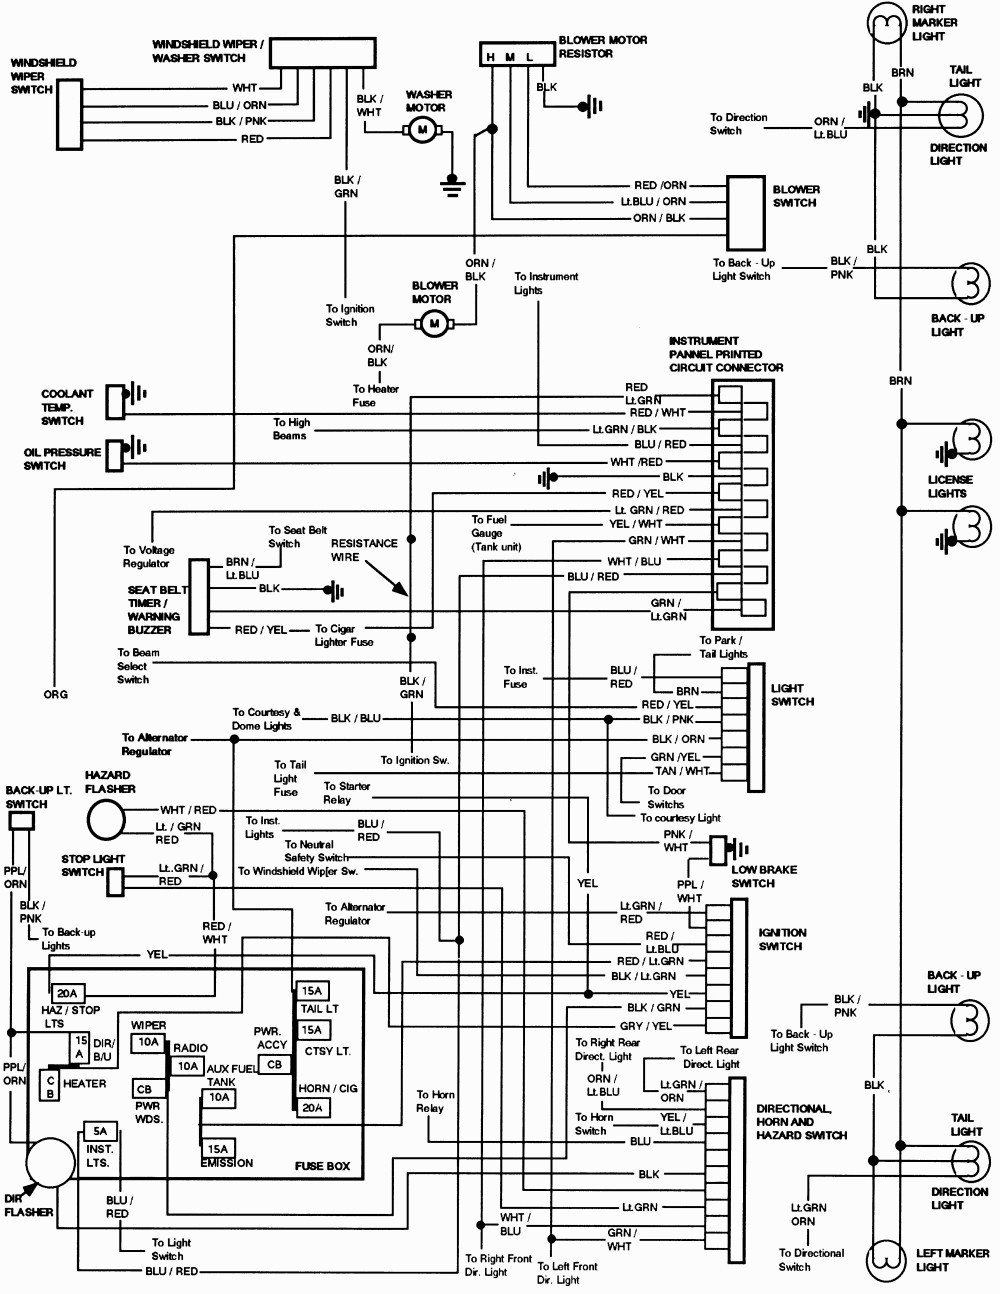 1993 ford aerostar wiring diagram